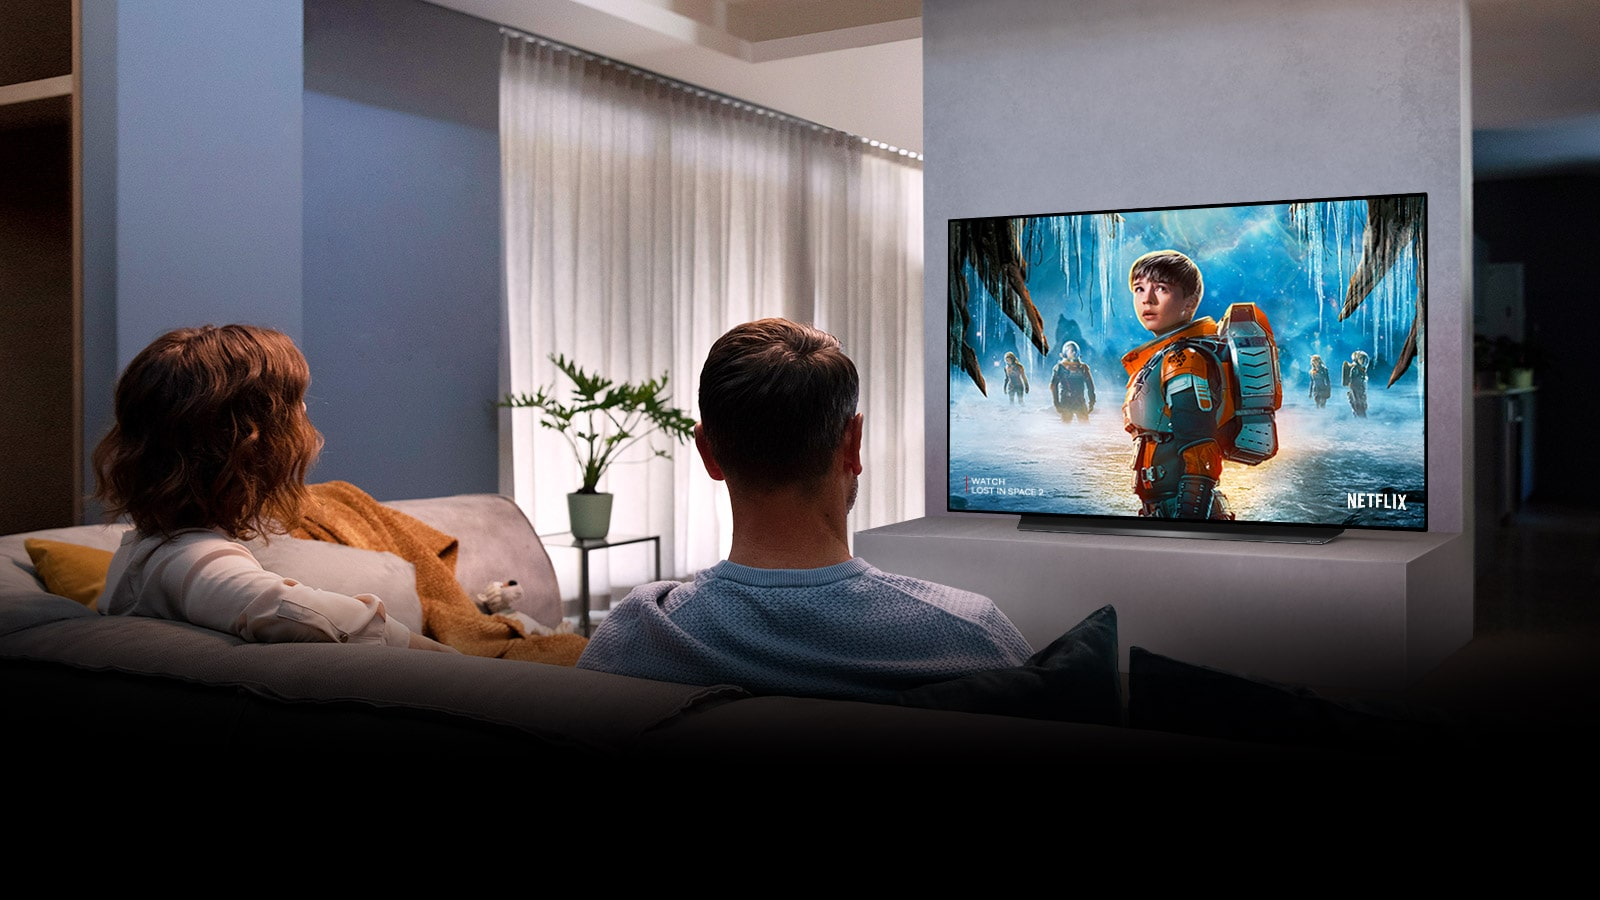 OLED makes home the best movie theatre1